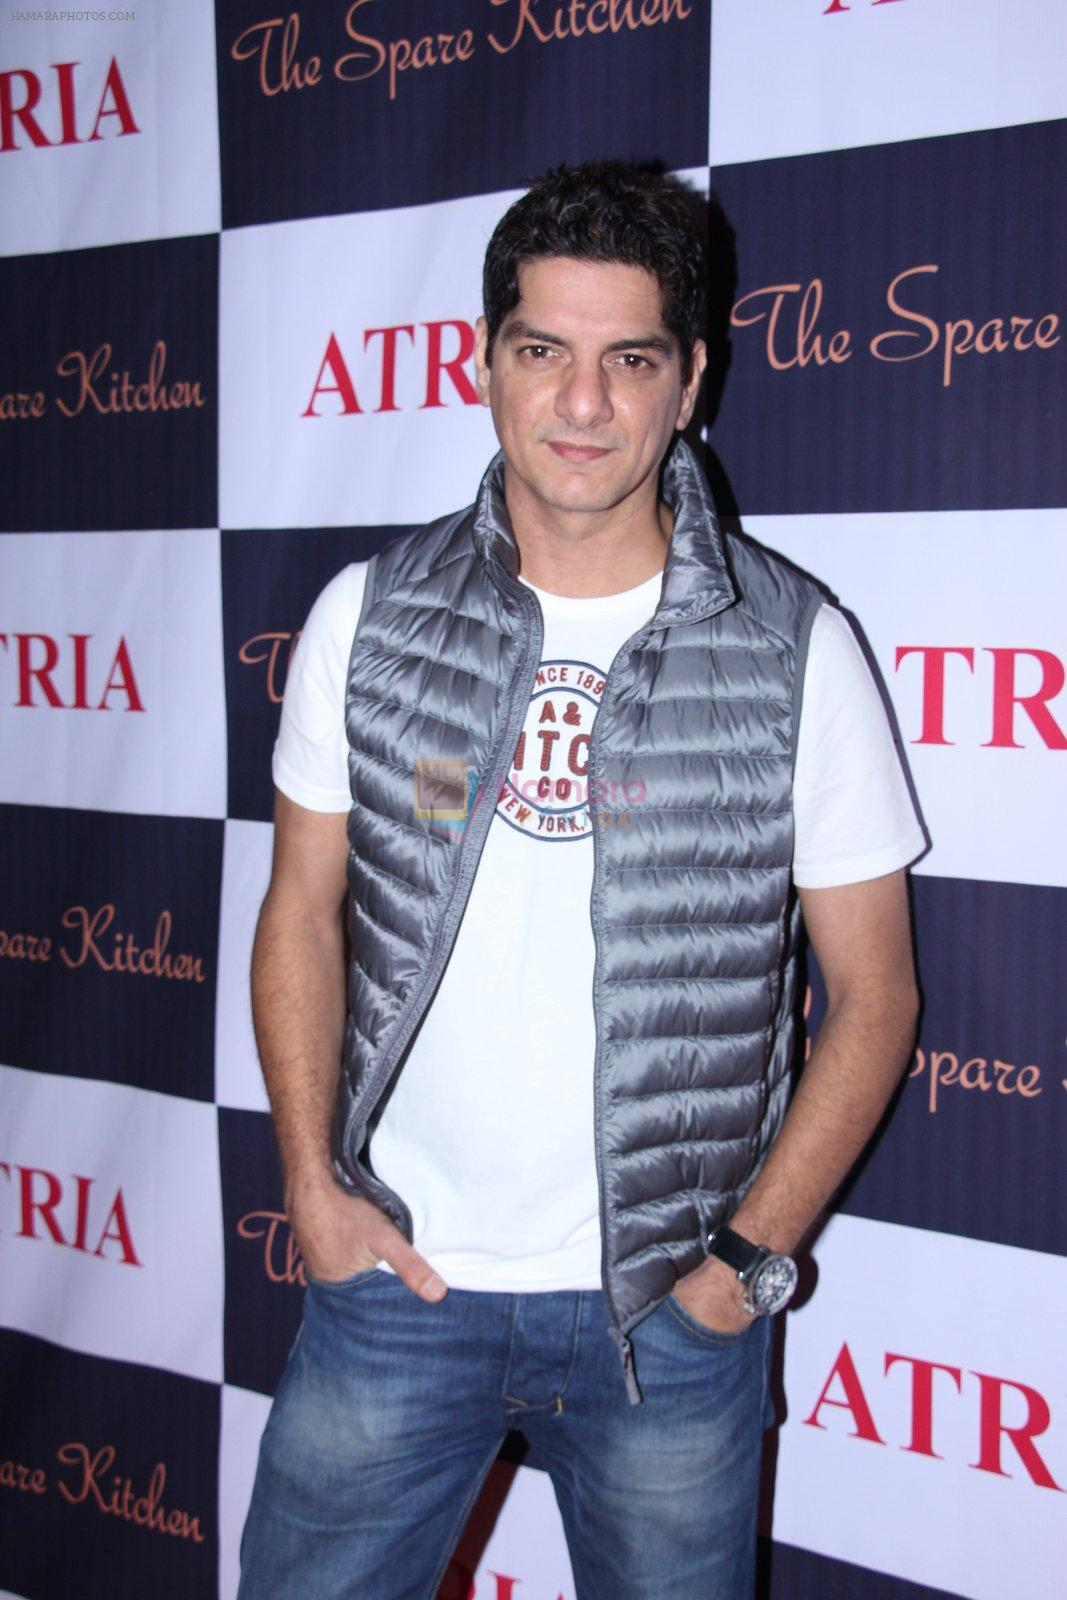 DJ Aqeel at Ritika and Kunal Vardhan's Spare Kitchen launch in Atria Mall on 25th nov 2016